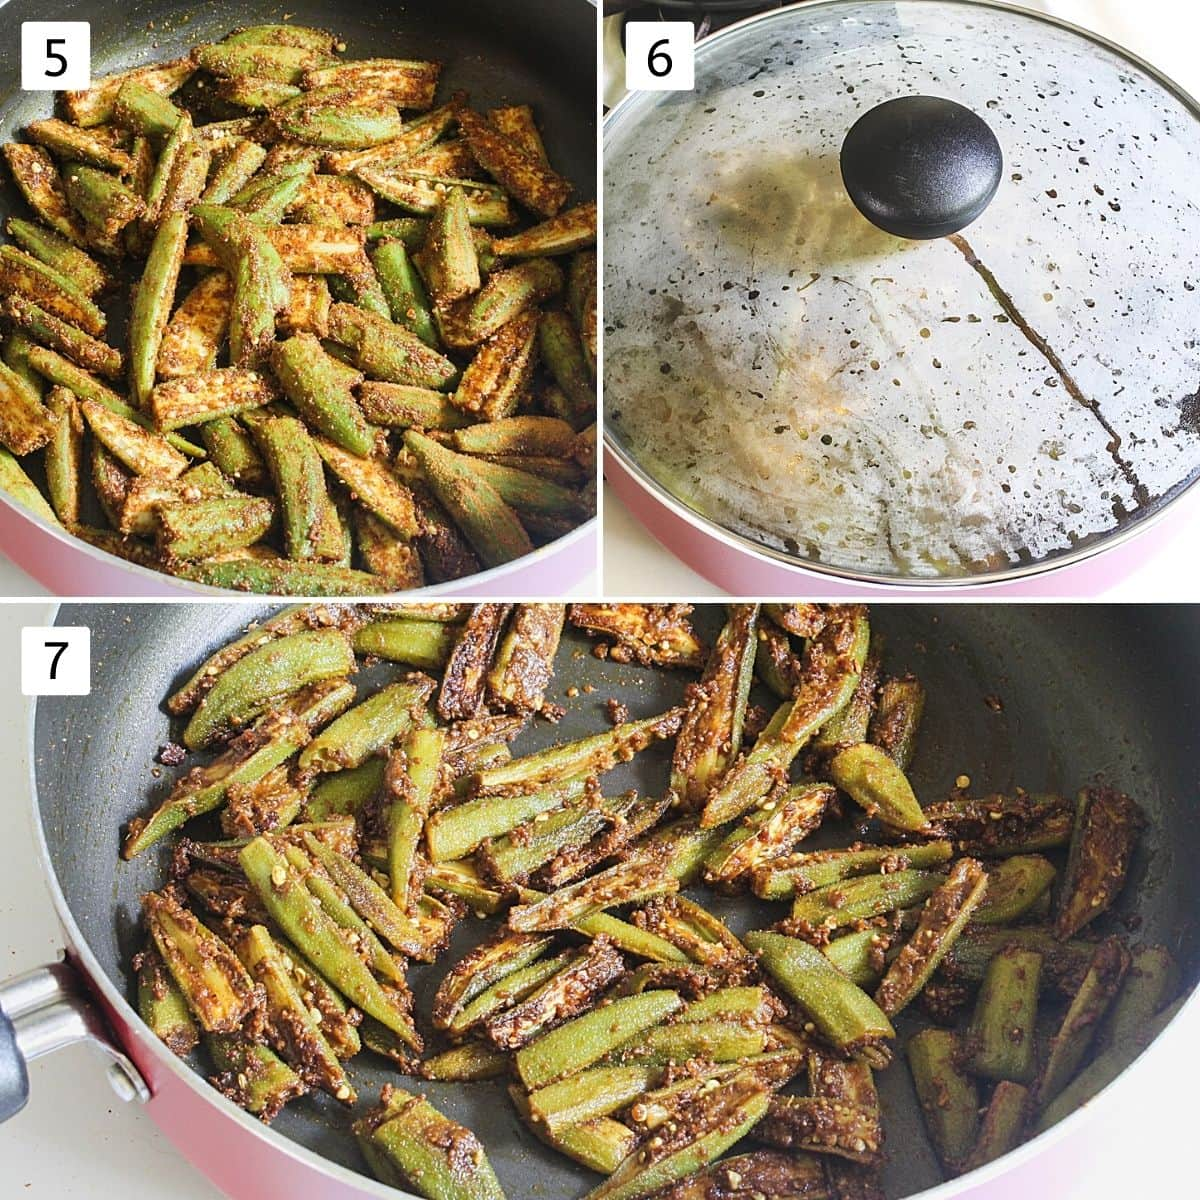 Collage of 3 steps showing adding okra to oil, covered with lid and cooked bhindi masala sabzi.